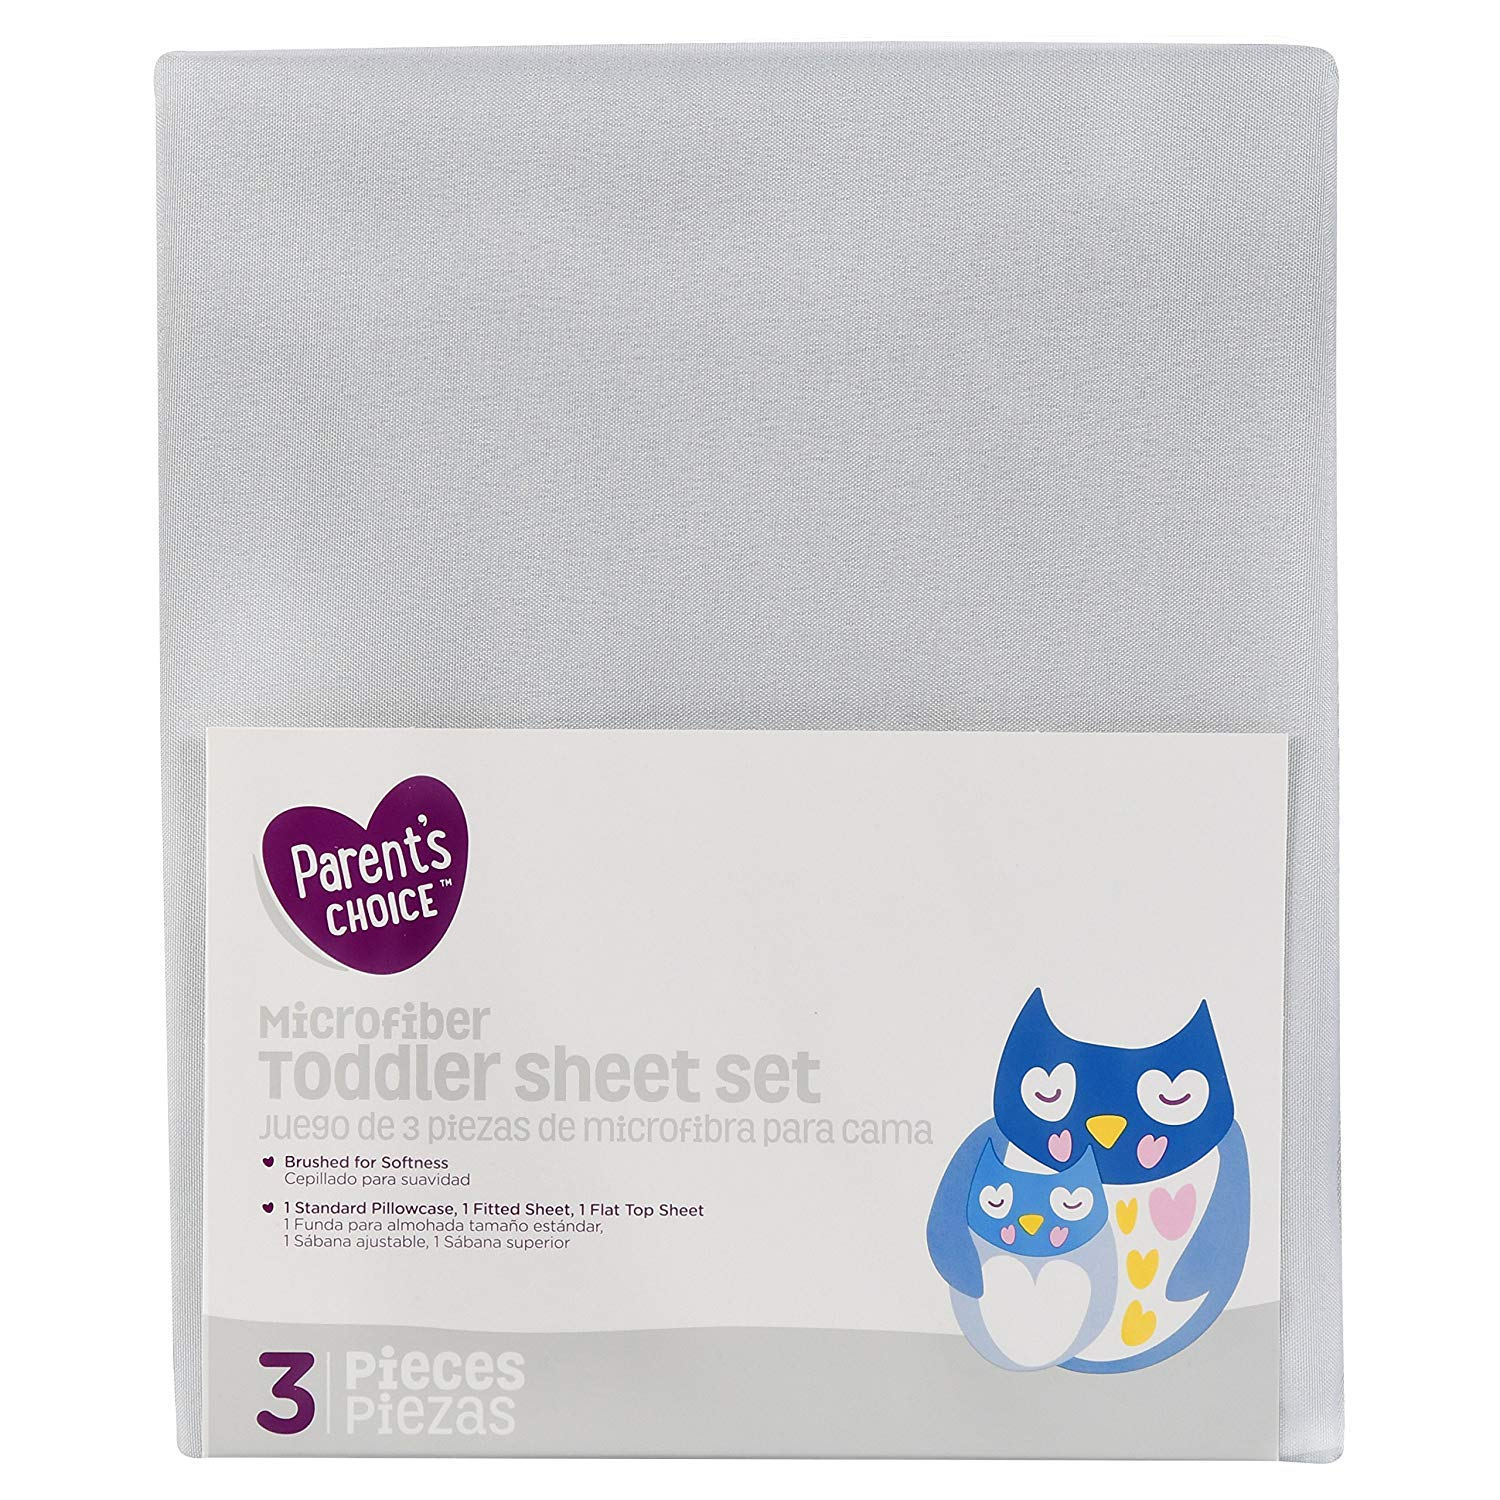 Parent's Choice Toddler Sheet Set, Gray, 3 Piece - Unisex